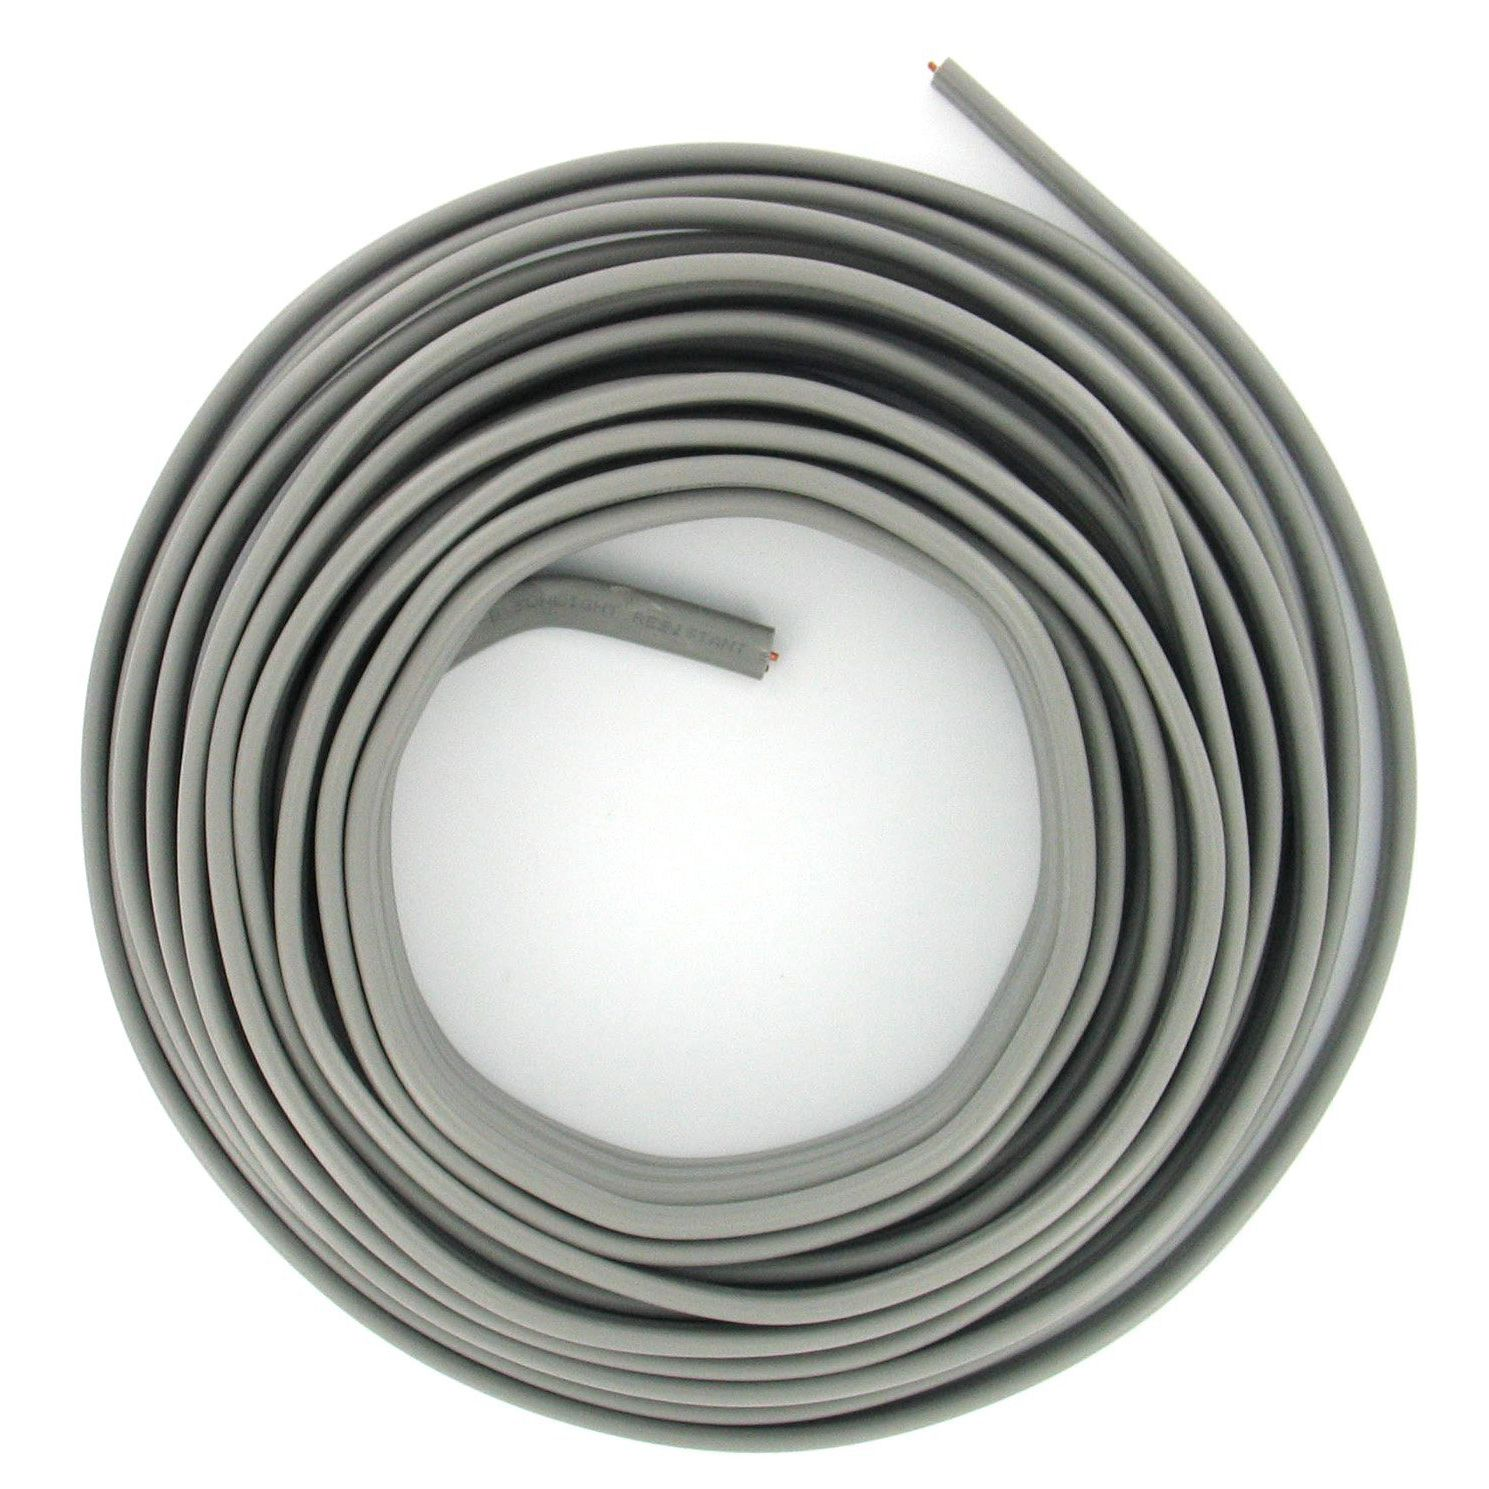 What Is Direct-Burial Underground Cable? New Construction Cable Tv Wiring on